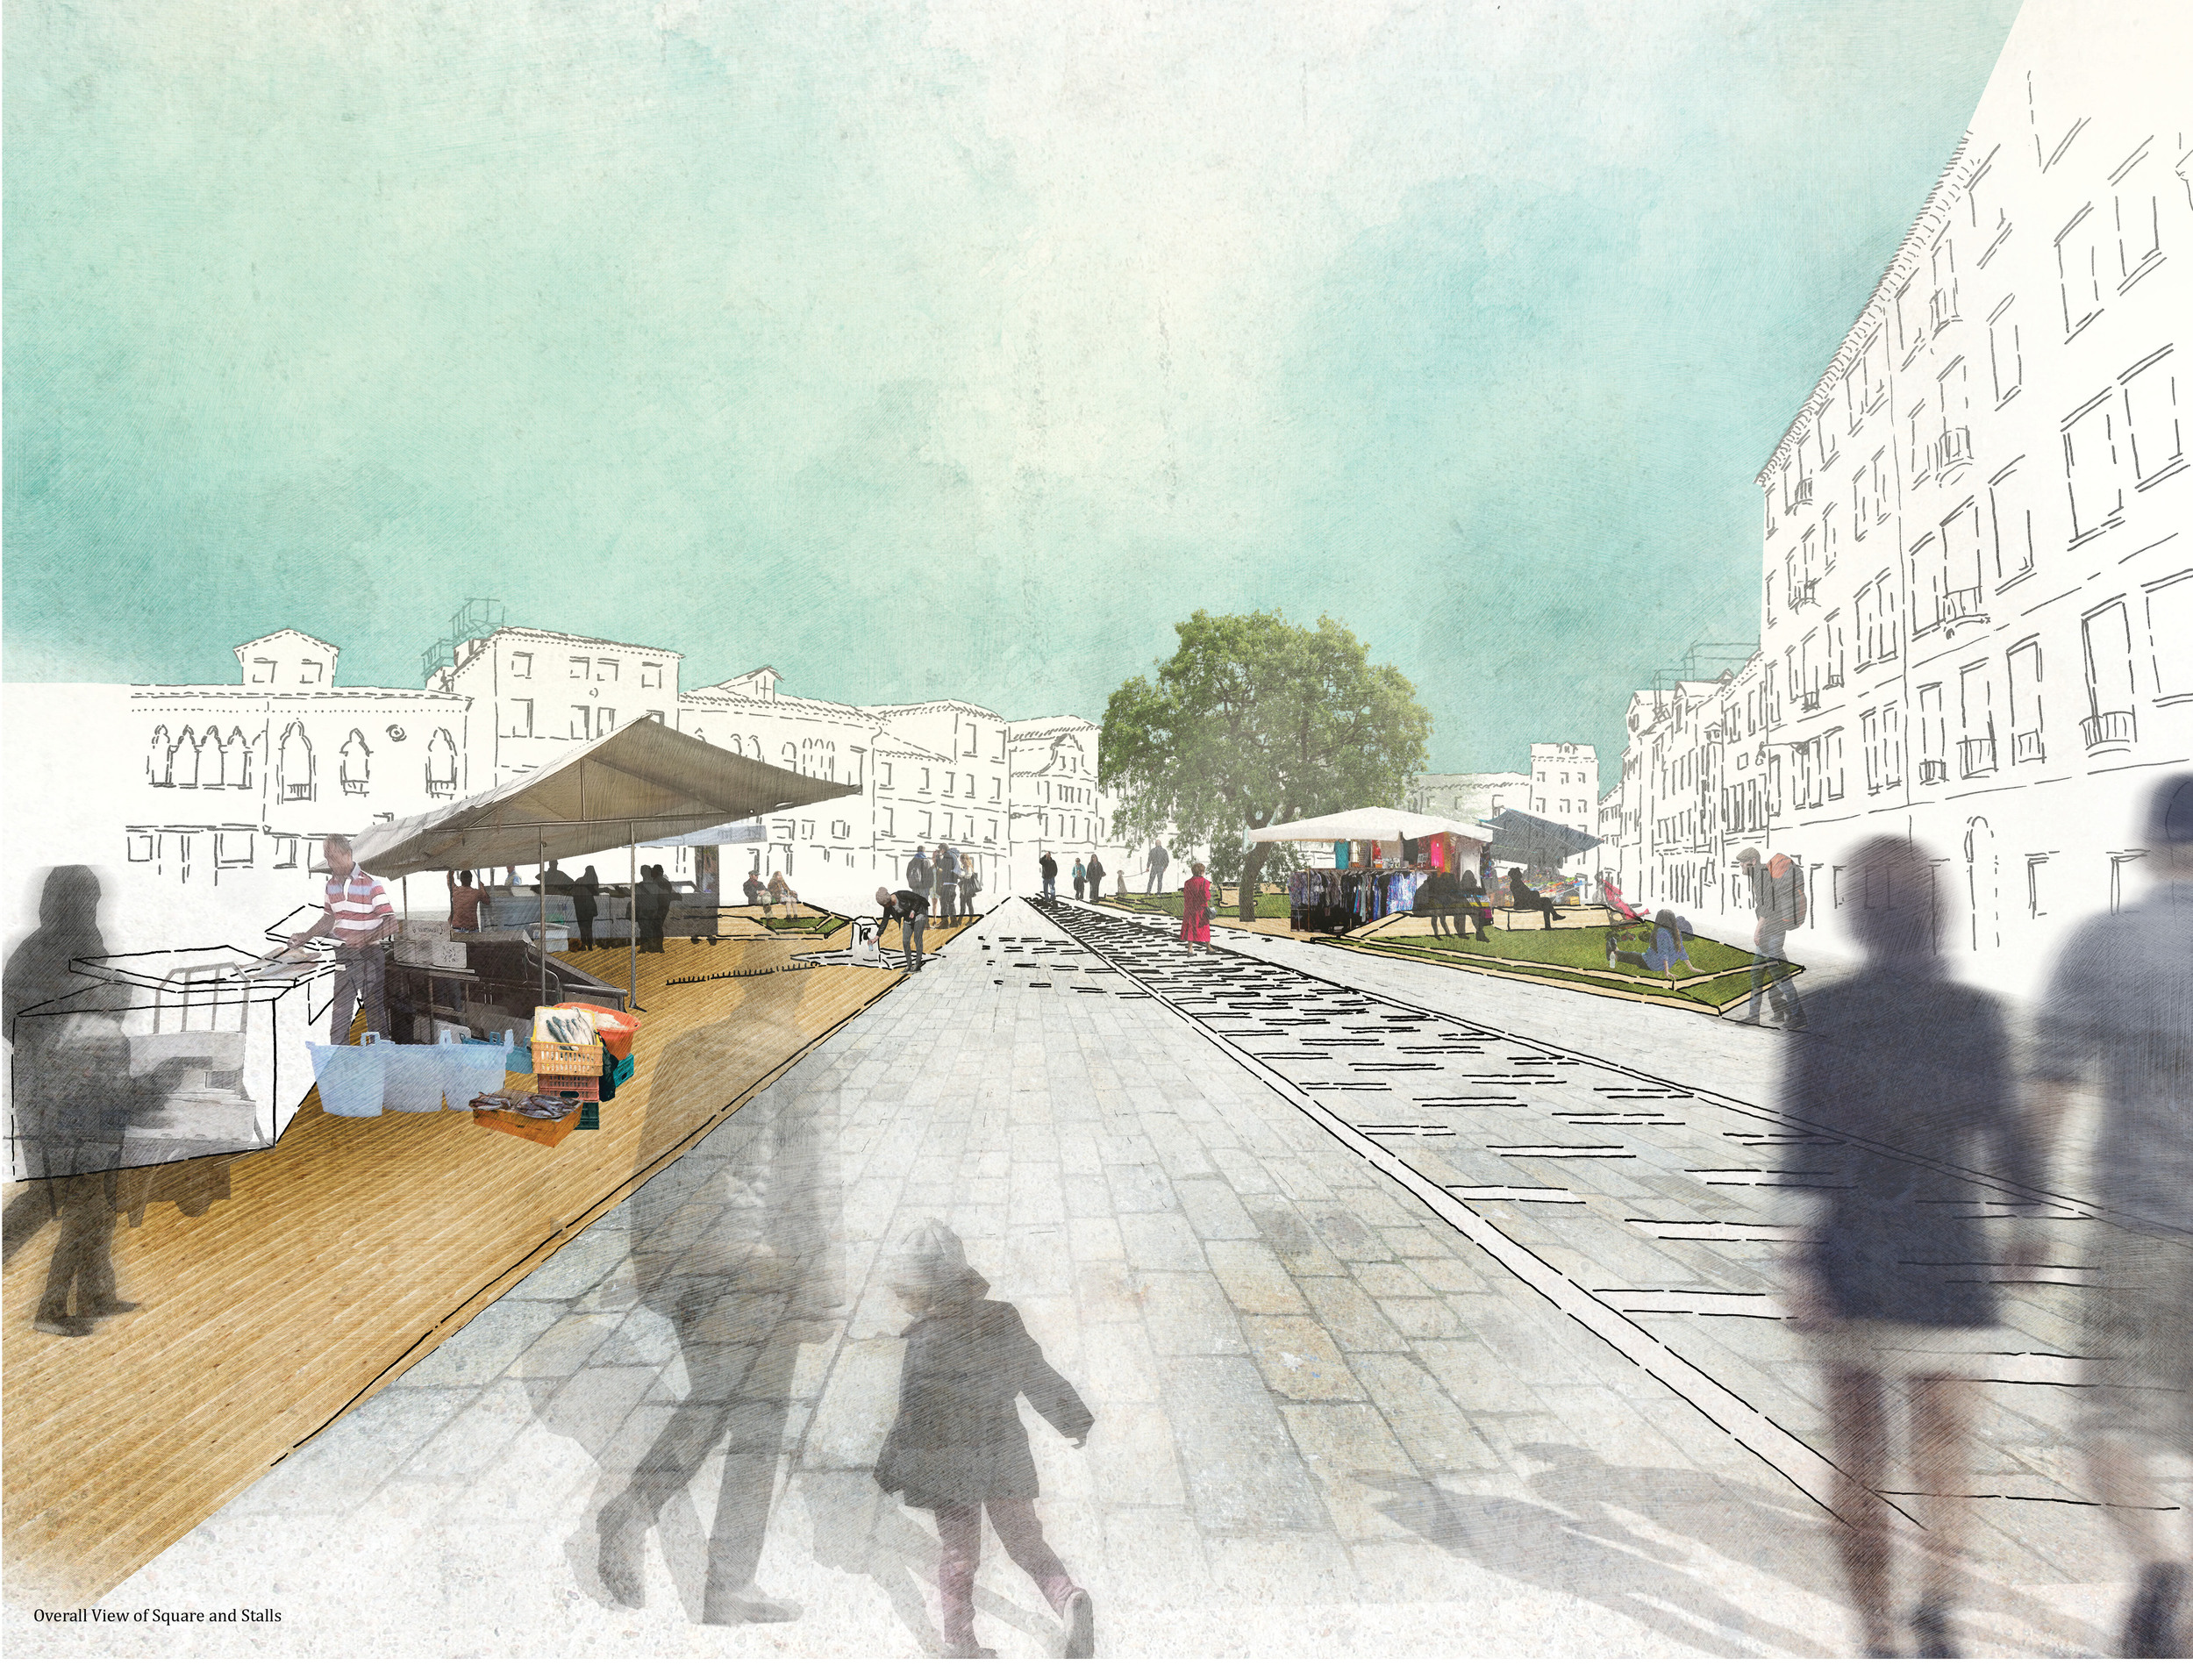 Overall View of Campo Santa Margherita with Stalls